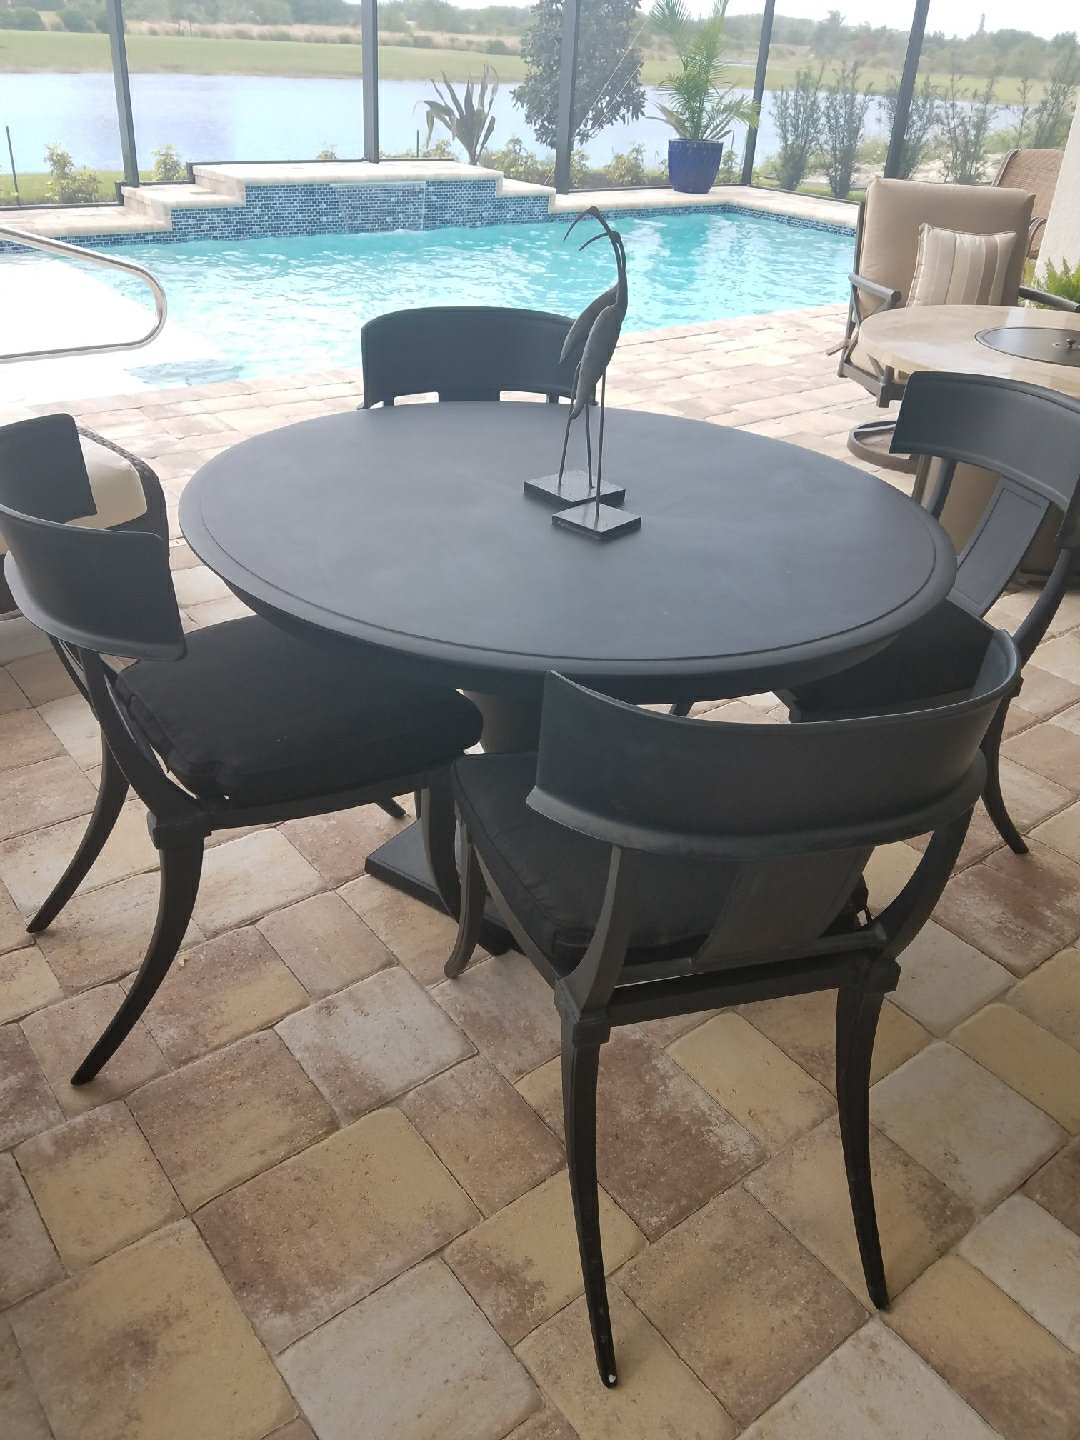 Terrific Restoration Hardware Outdoor Round 48 Dining Set With 4 Chairs And Cushions Inzonedesignstudio Interior Chair Design Inzonedesignstudiocom